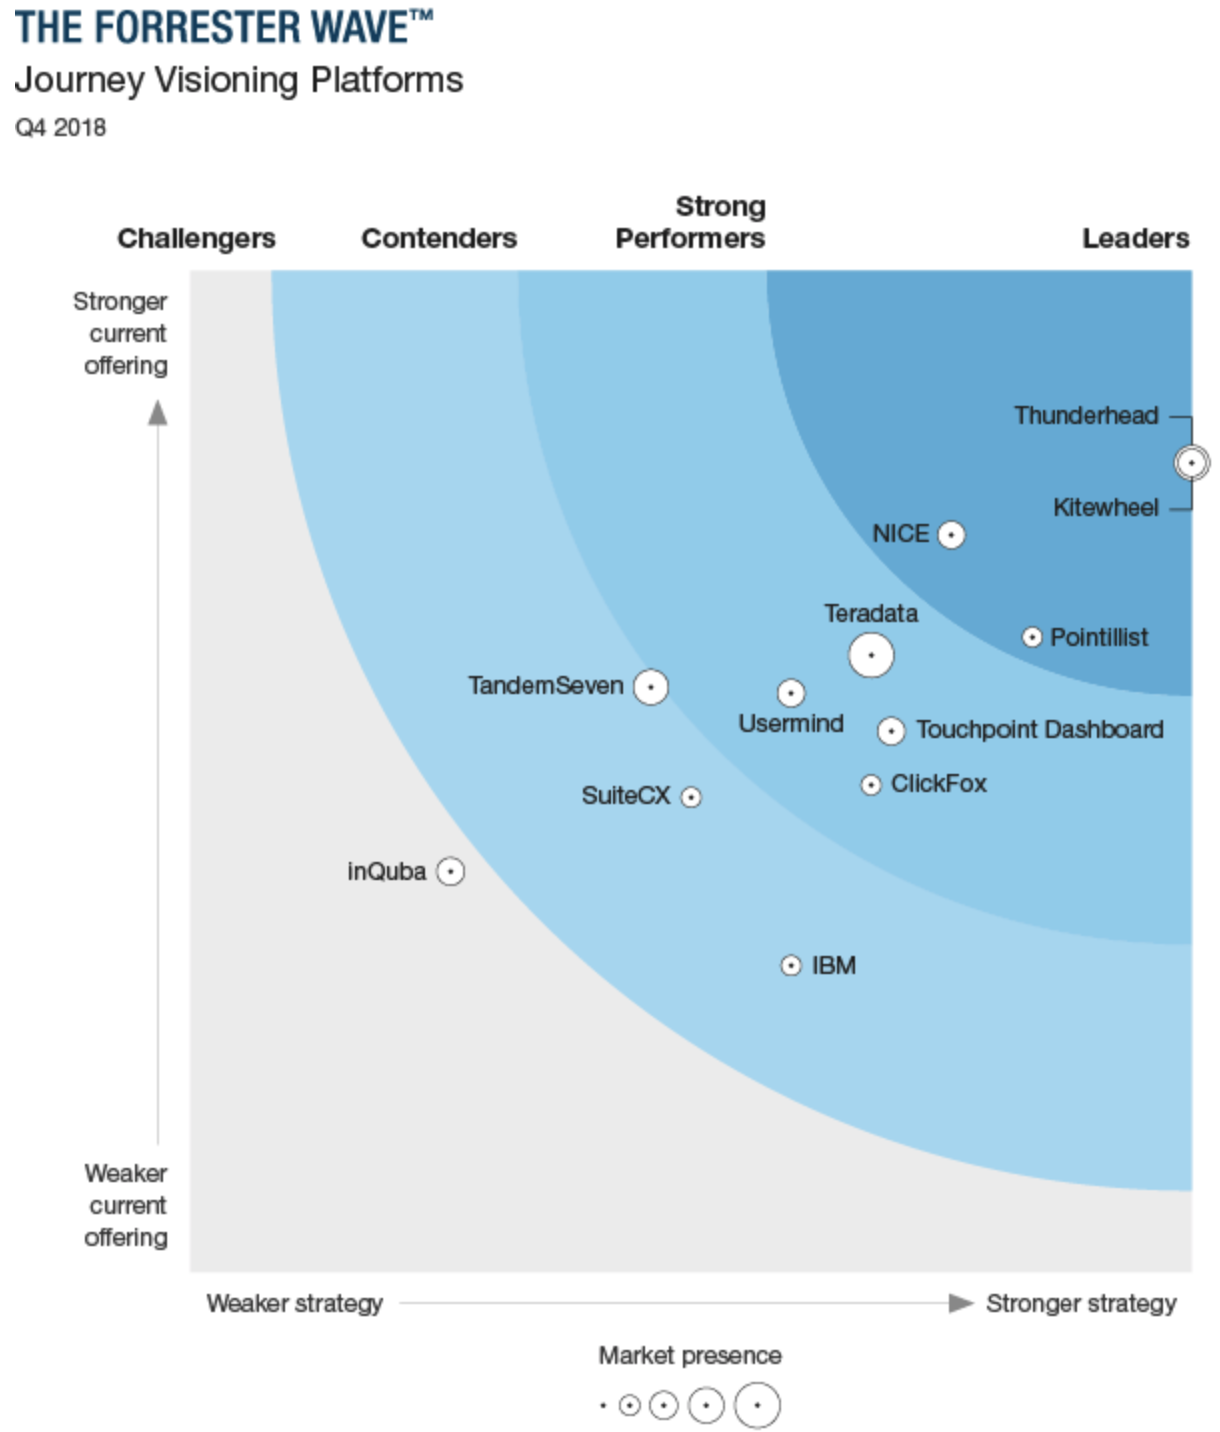 Forrester Wave Customer Journey Vision Platforms, 2019 Q4